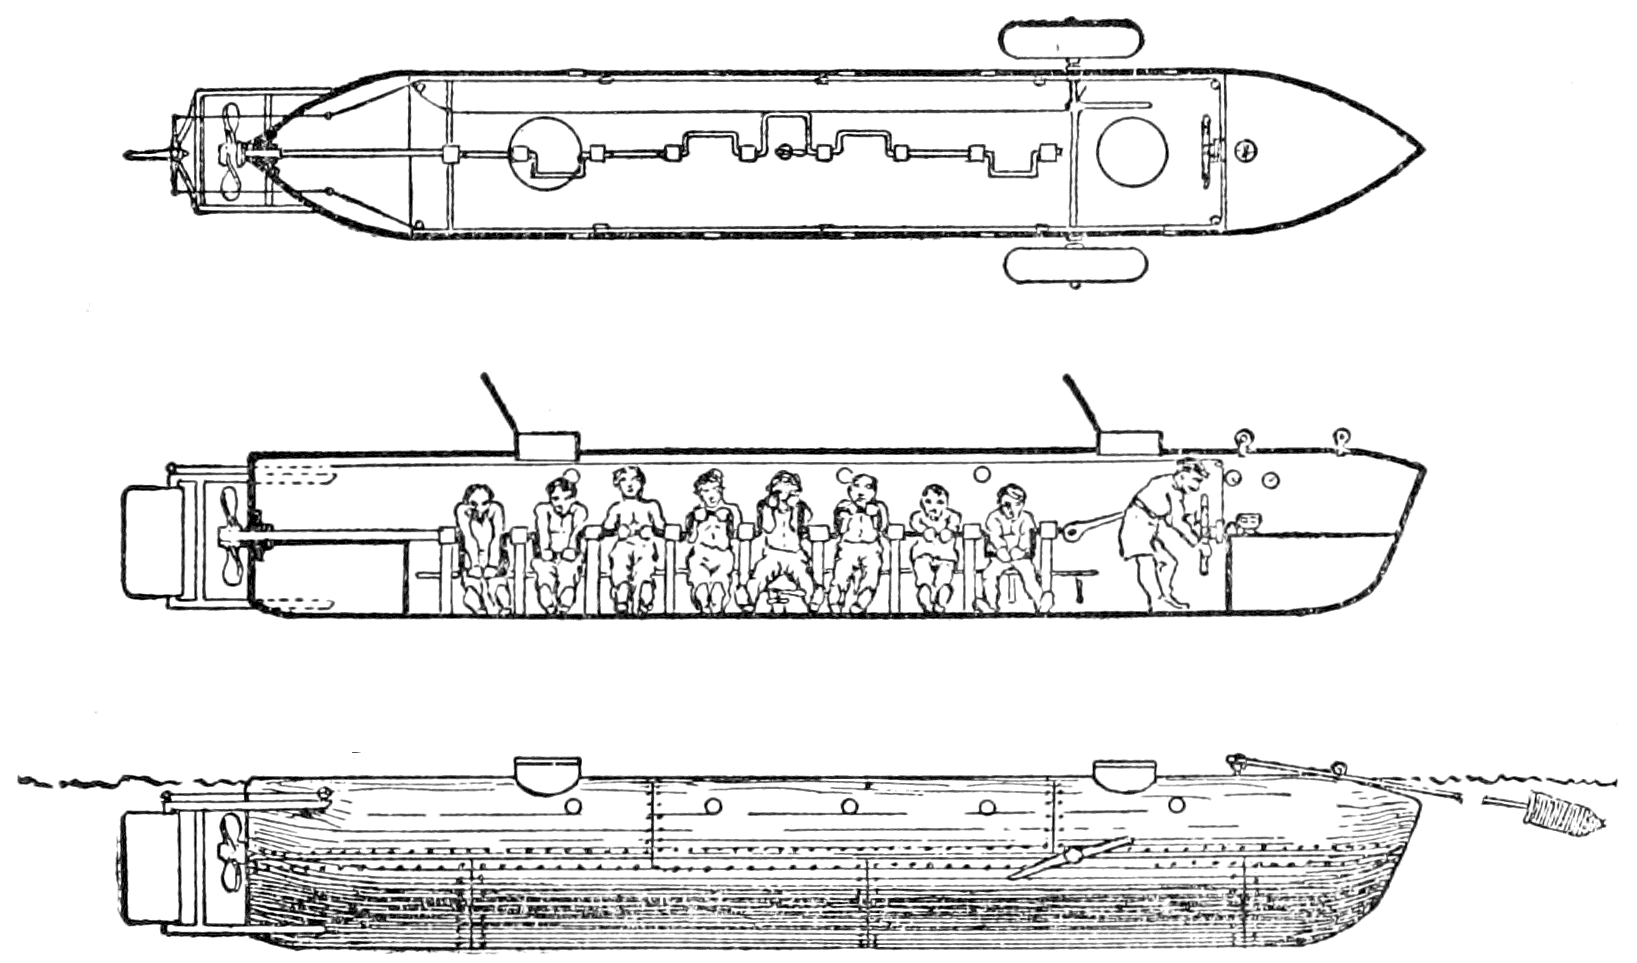 hight resolution of psm v58 d167 confederate submarine which sank the housatonic png